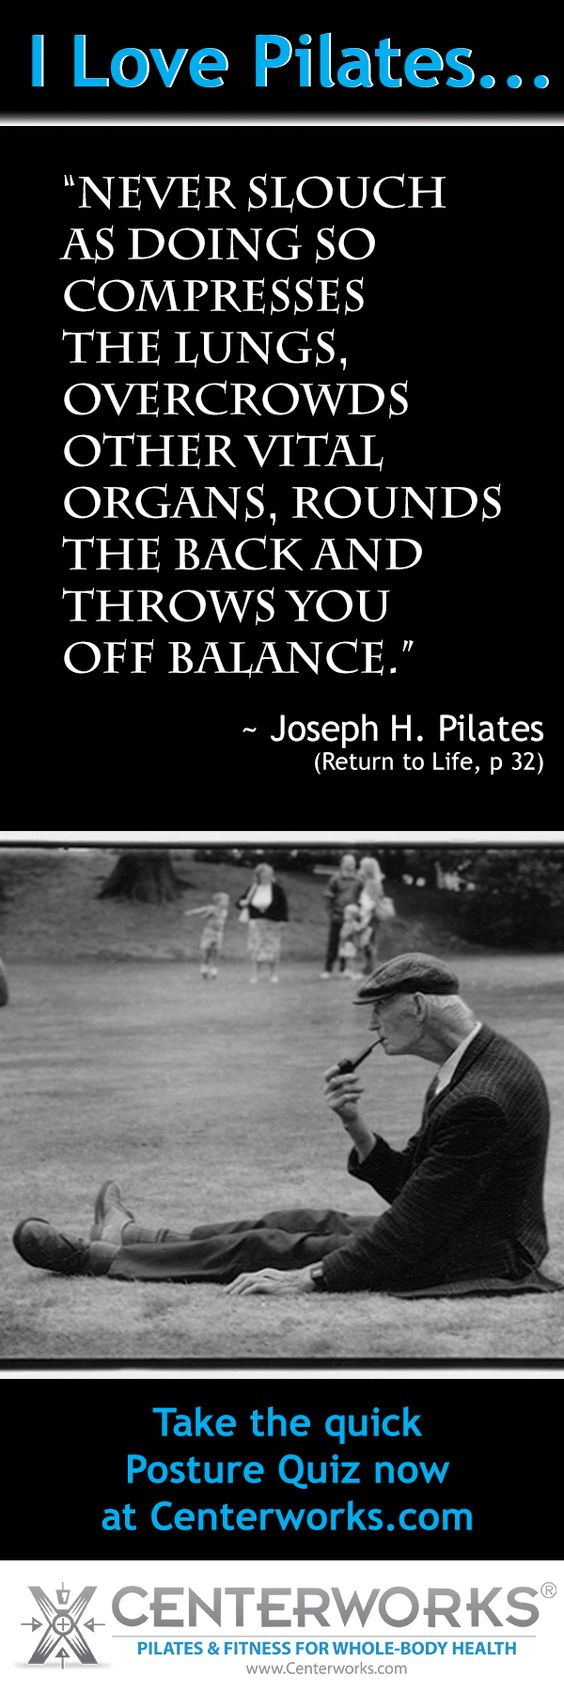 "Pilates Quotes: ""Never slouch, as doing so compresses the lungs, overcrowds other vital organs, rounds the back, and throws you off balance.""  ~ Joseph H. Pilates"